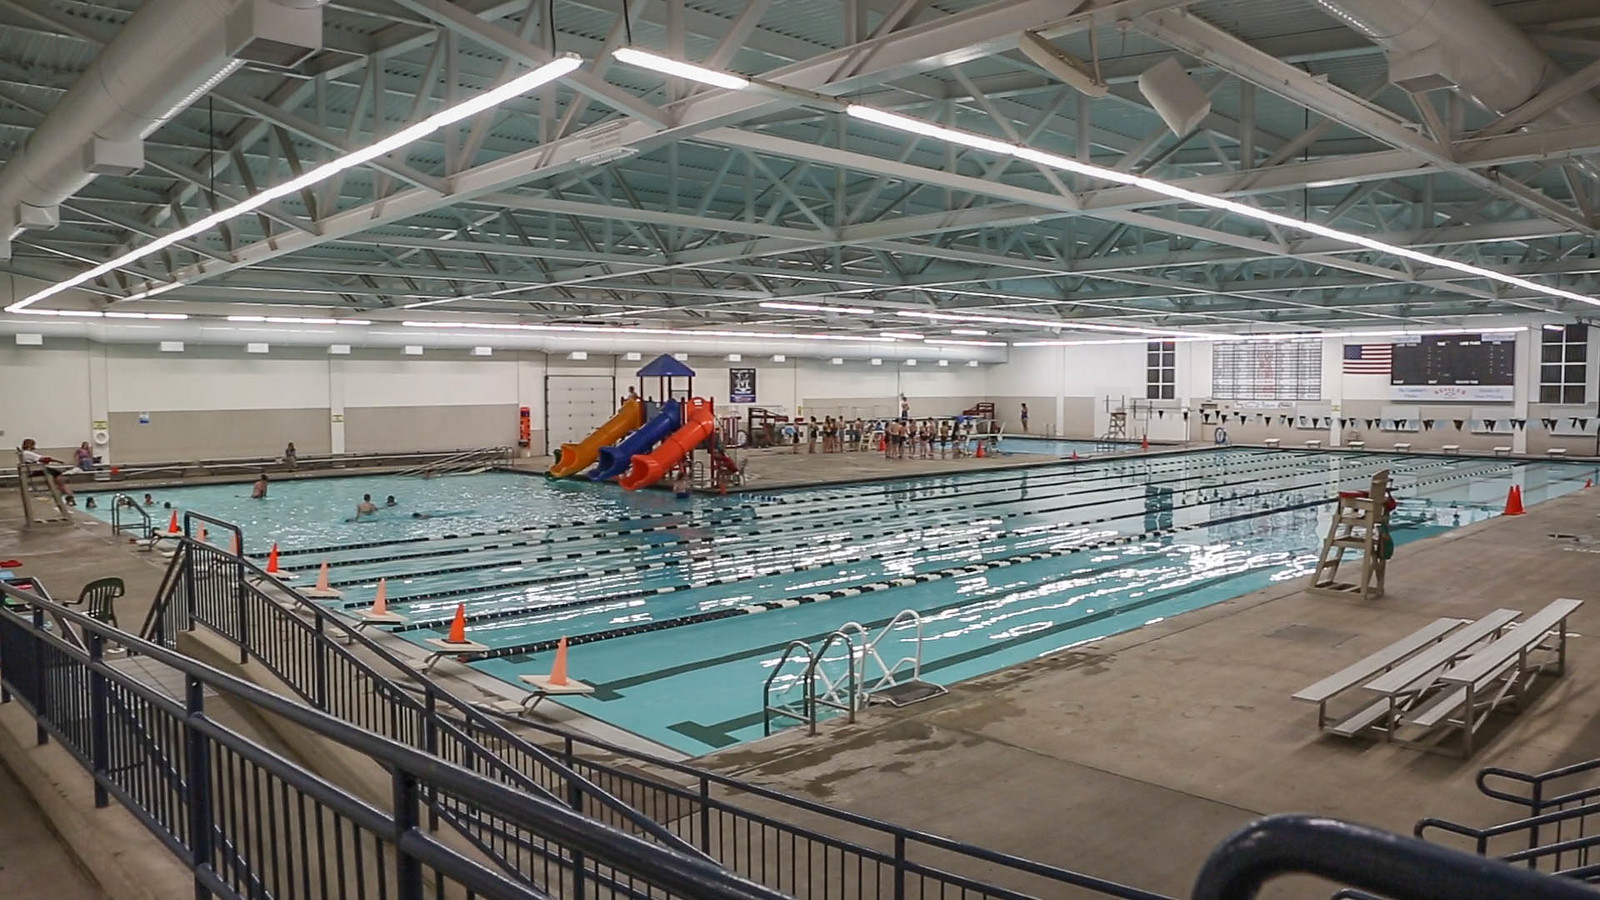 Aquatics mandan parks and recreation for Citywide aquatics division swimming pool slide